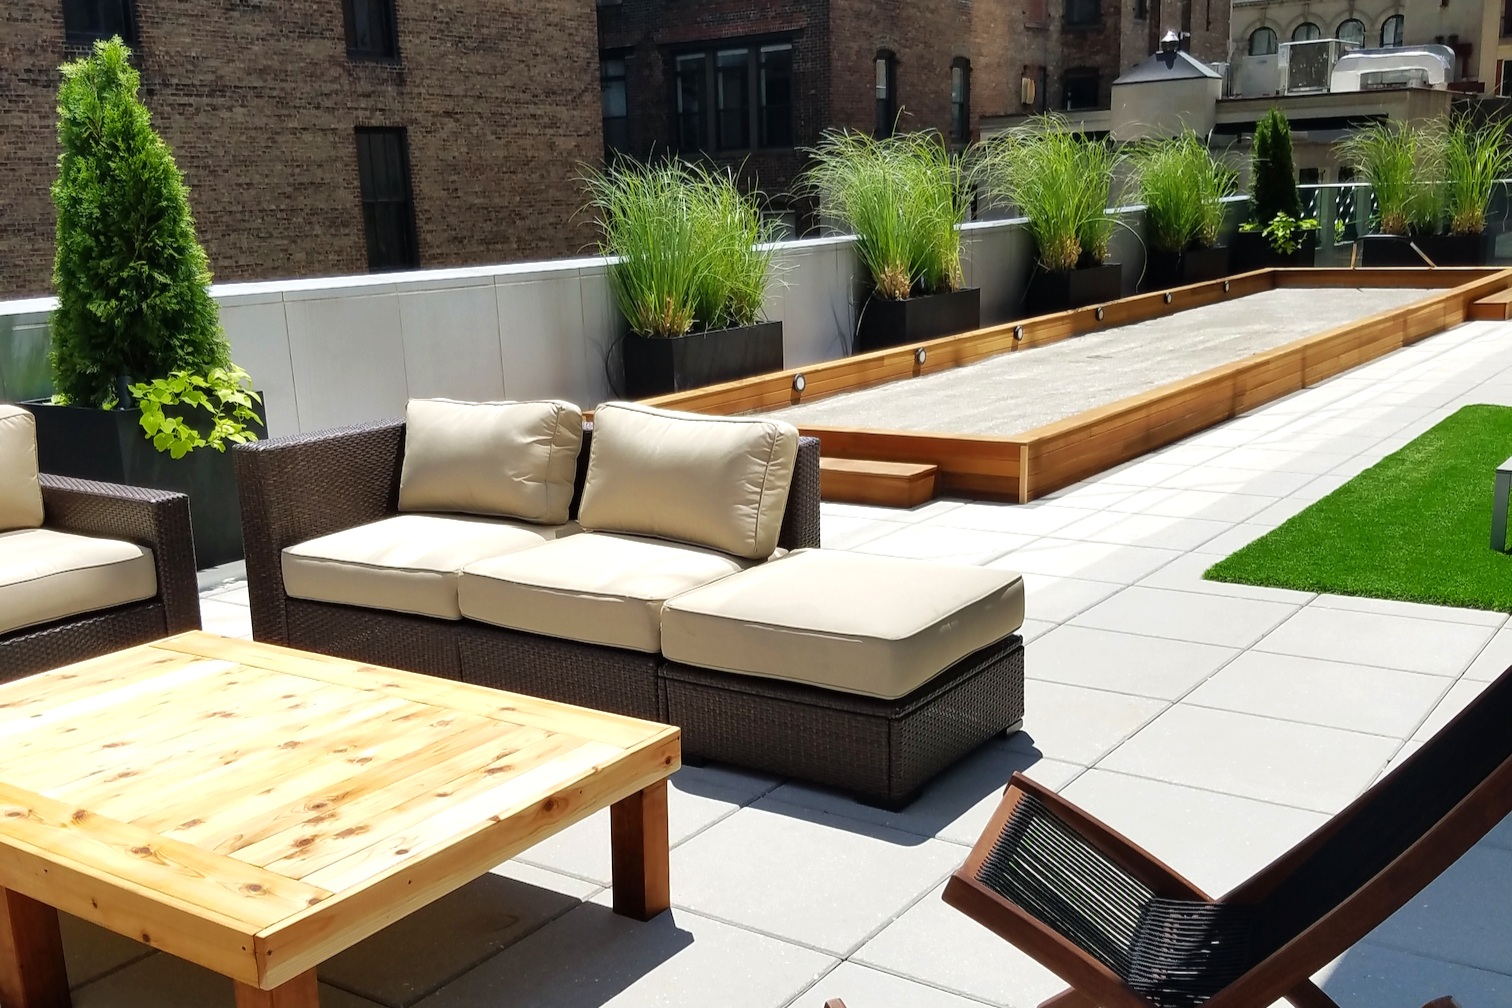 Design+Build - Rising Gardens works with homeowners, architects, designers and real estate developers on full-scale landscapes that include custom carpentry, masonry, irrigation, lighting and soft-scaping.